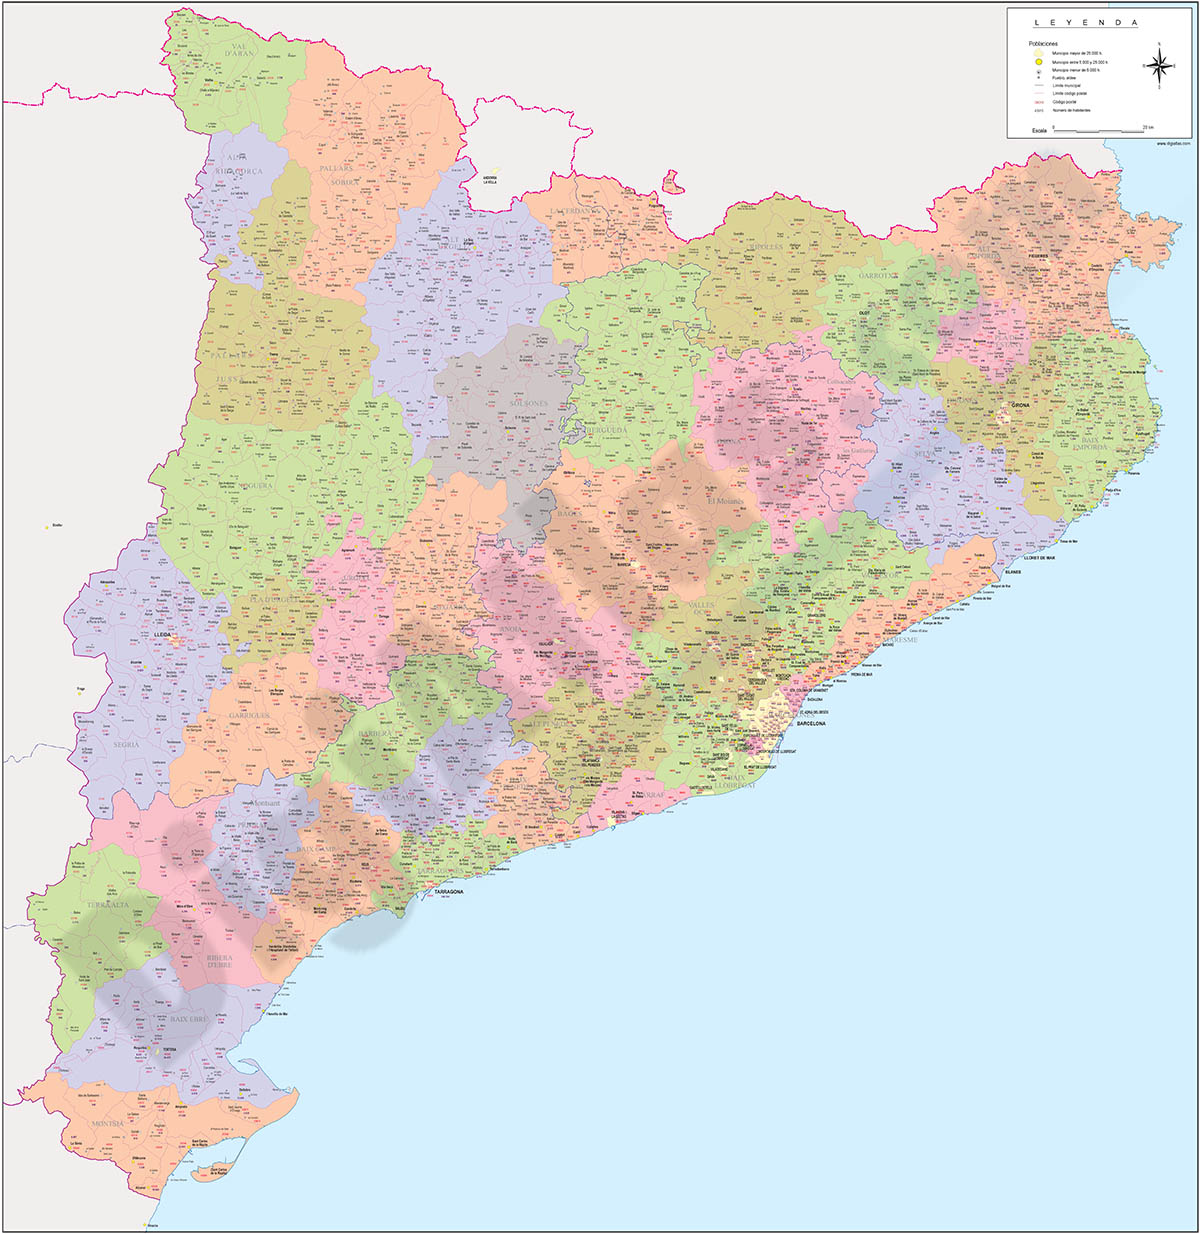 Catalonia - Map with postal codes, municipalities and the number of inhabit